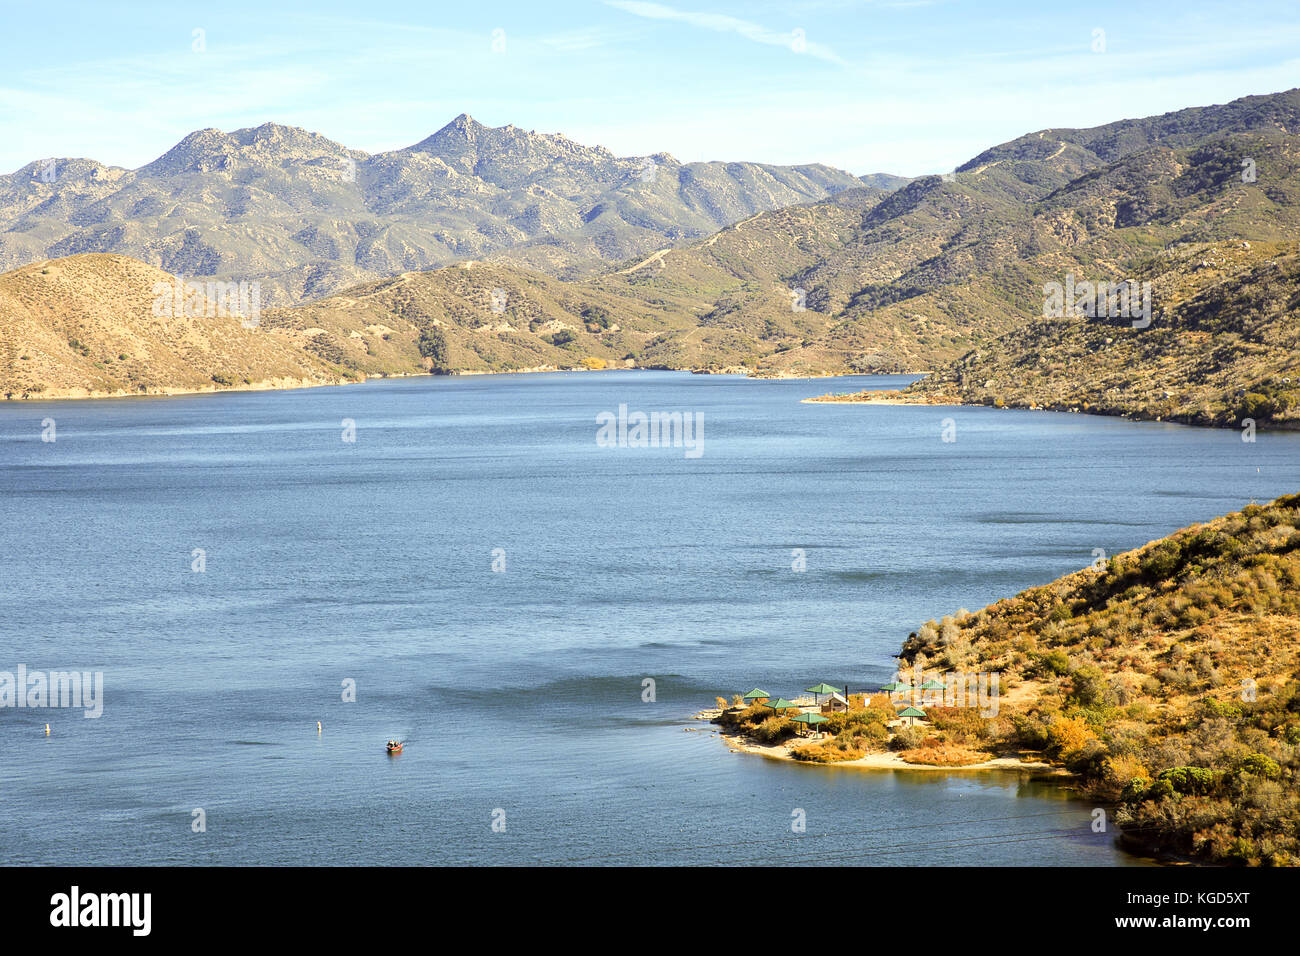 Overview of Silverwood lake state recreational area - Stock Image